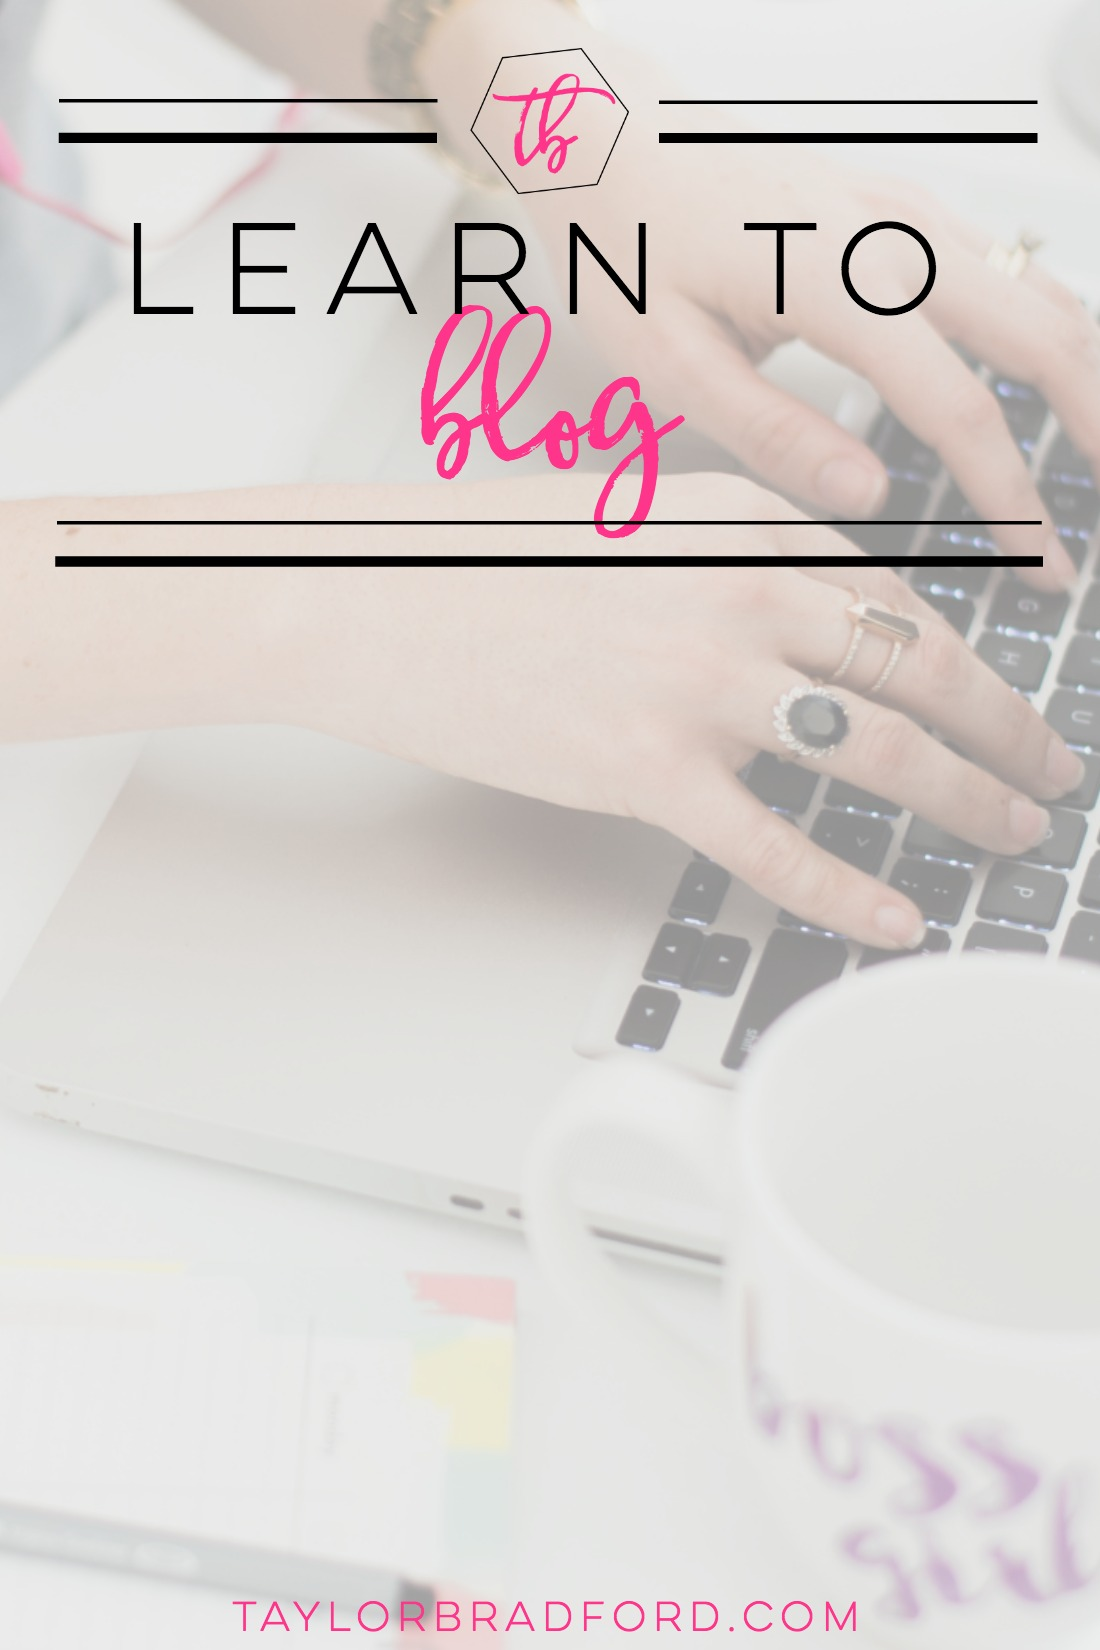 The #bloggingedumacation series teaches you the nitty gritty of blogging (i.e. how to run a blog).